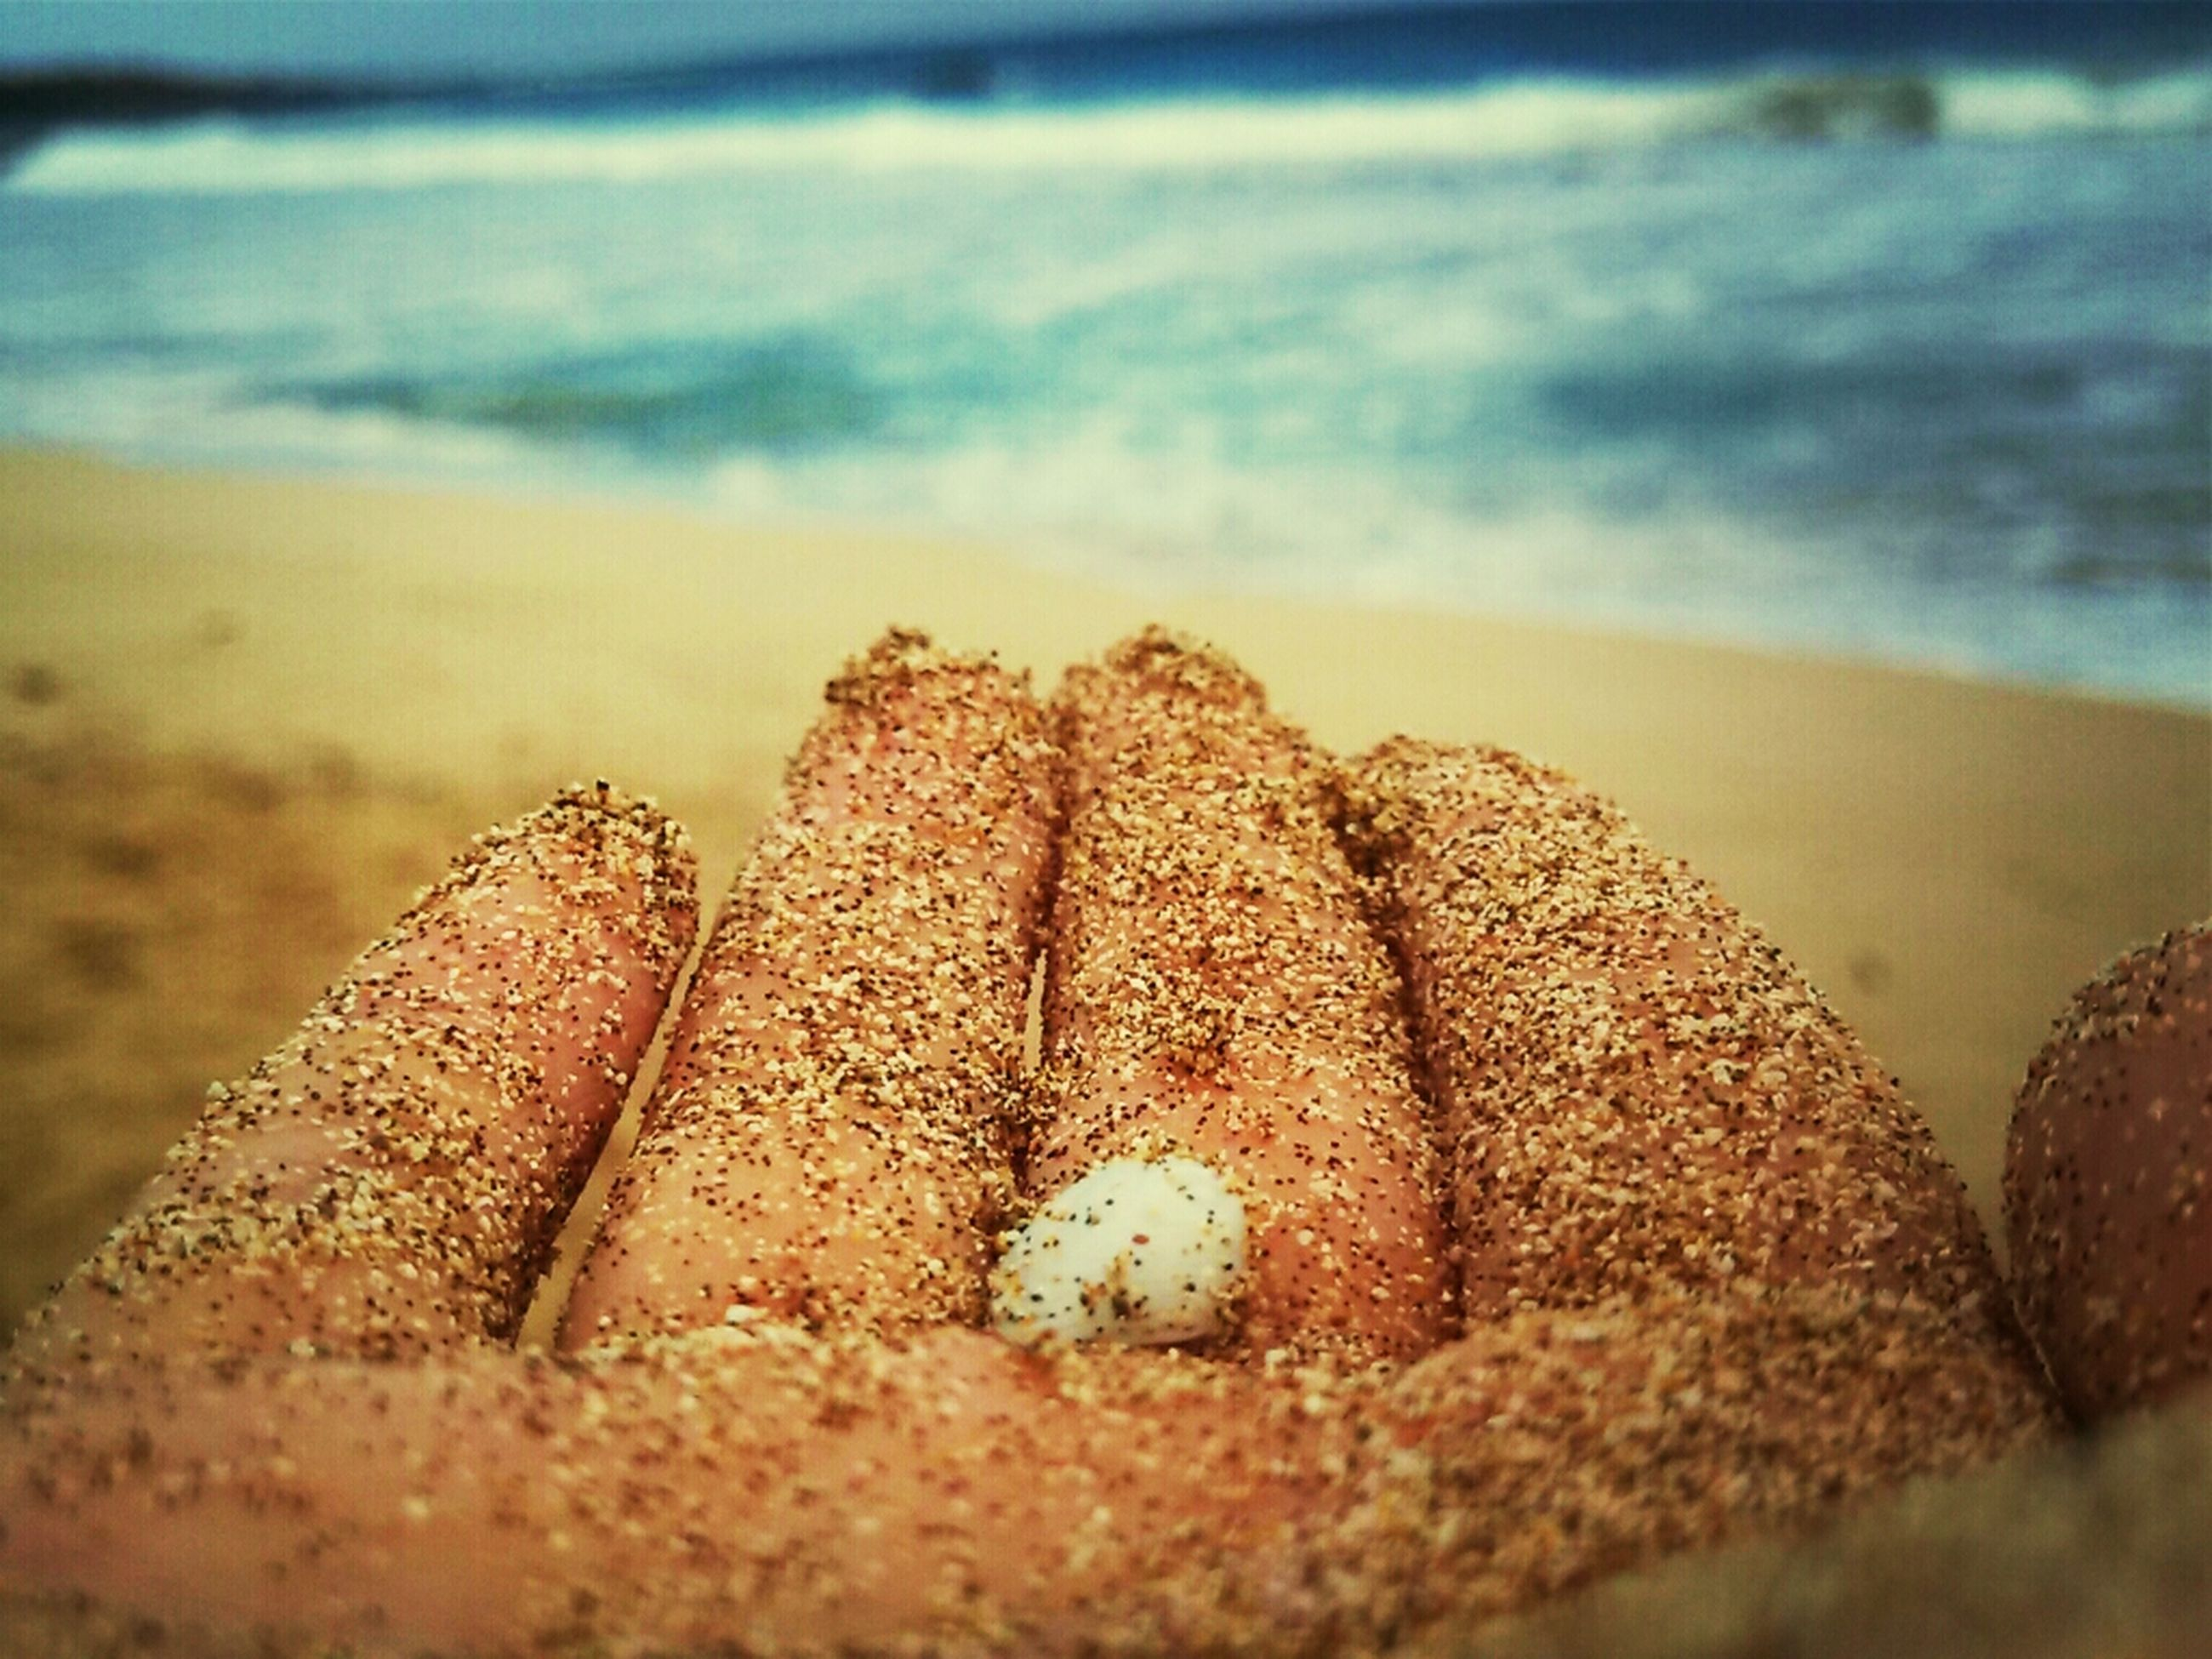 beach, sand, sea, shore, focus on foreground, seashell, close-up, selective focus, nature, animal shell, pebble, tranquility, water, shell, rock - object, surface level, outdoors, beauty in nature, day, stone - object